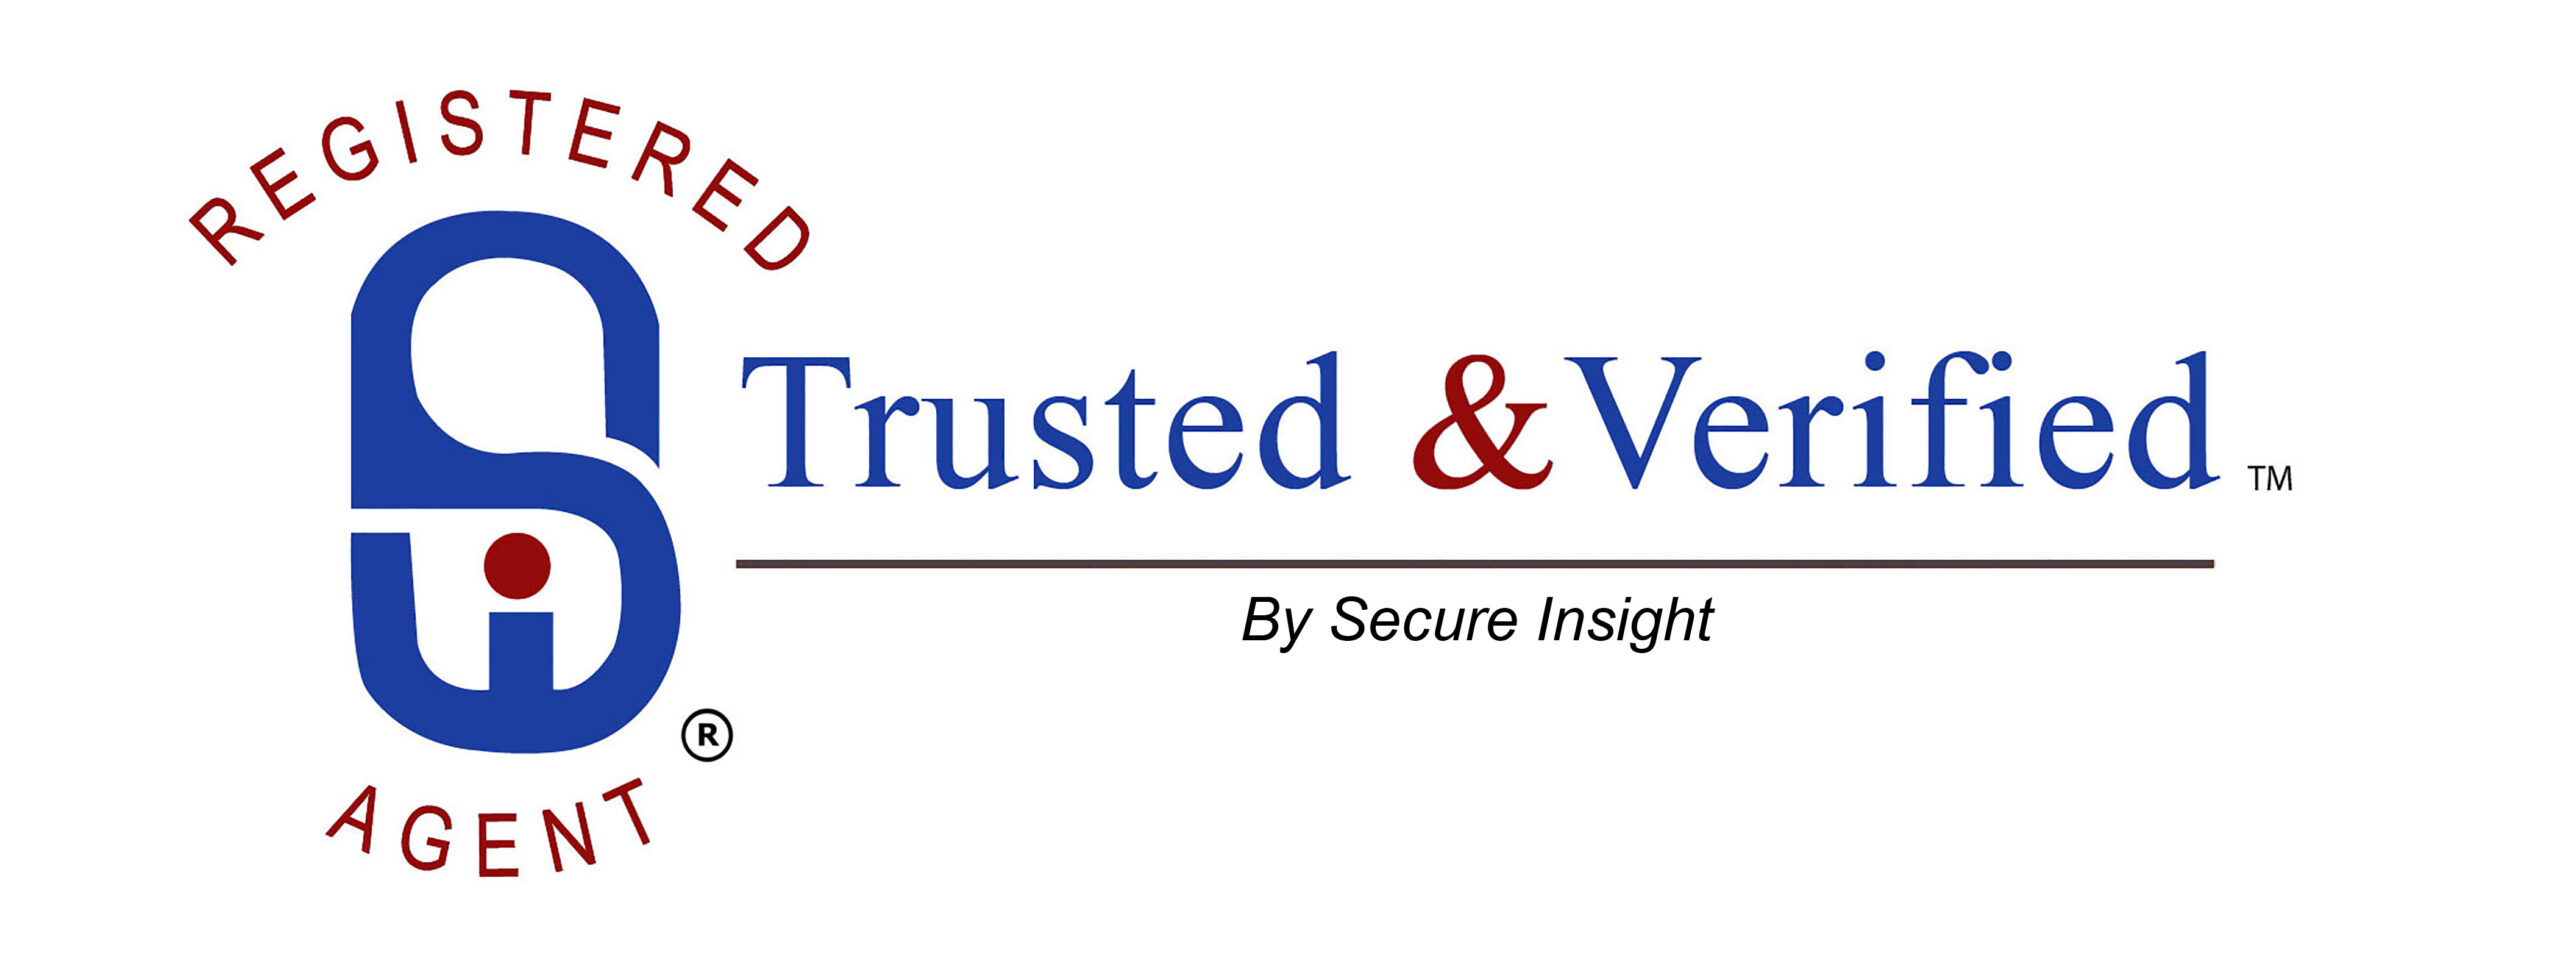 Secure Insight Agent Seal